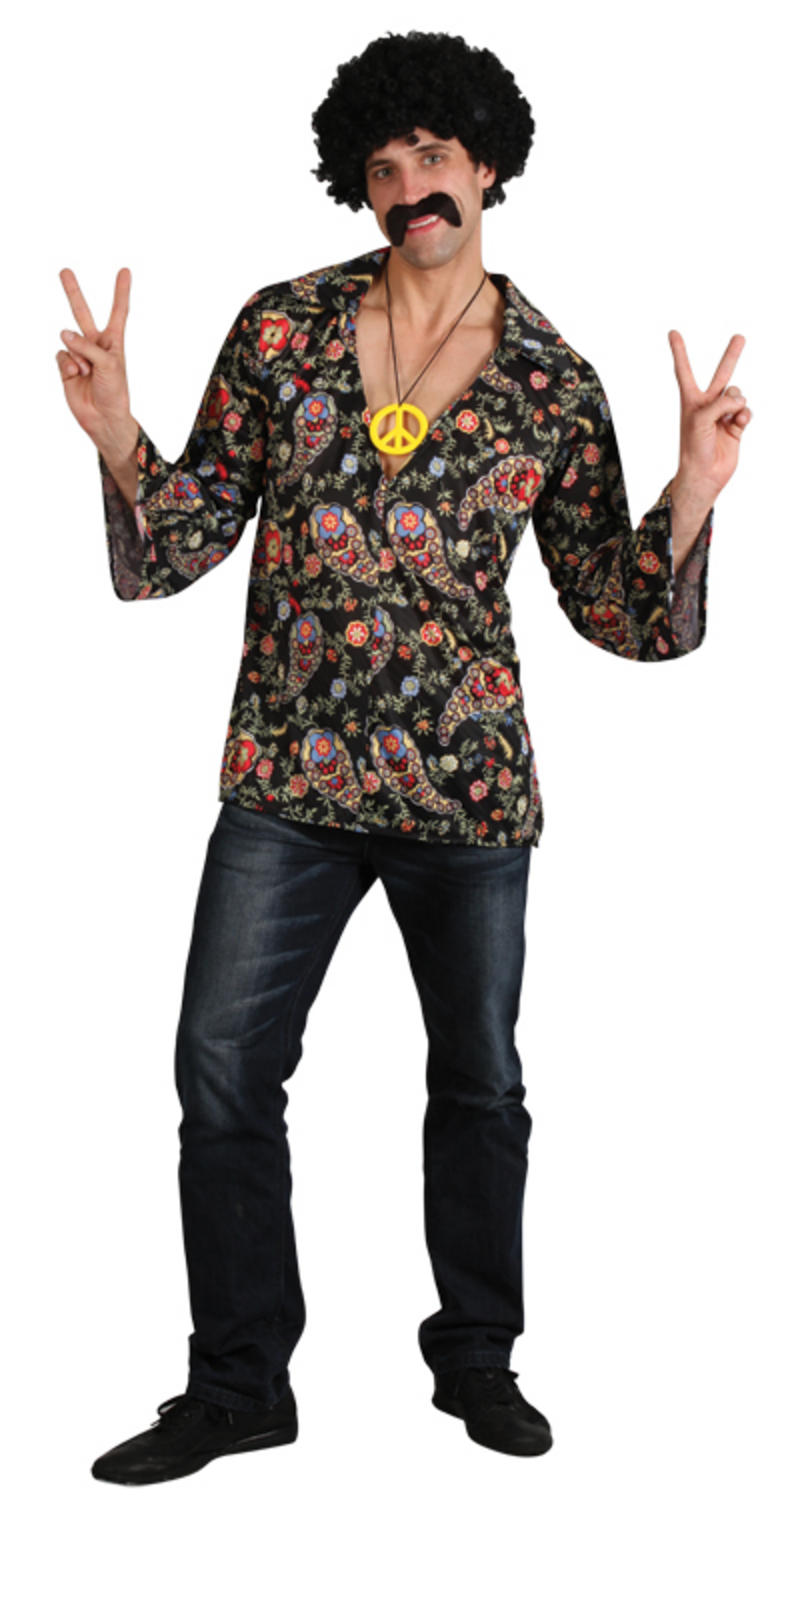 cool hippy groovy style flower power shirt with peace medallion. Black Bedroom Furniture Sets. Home Design Ideas